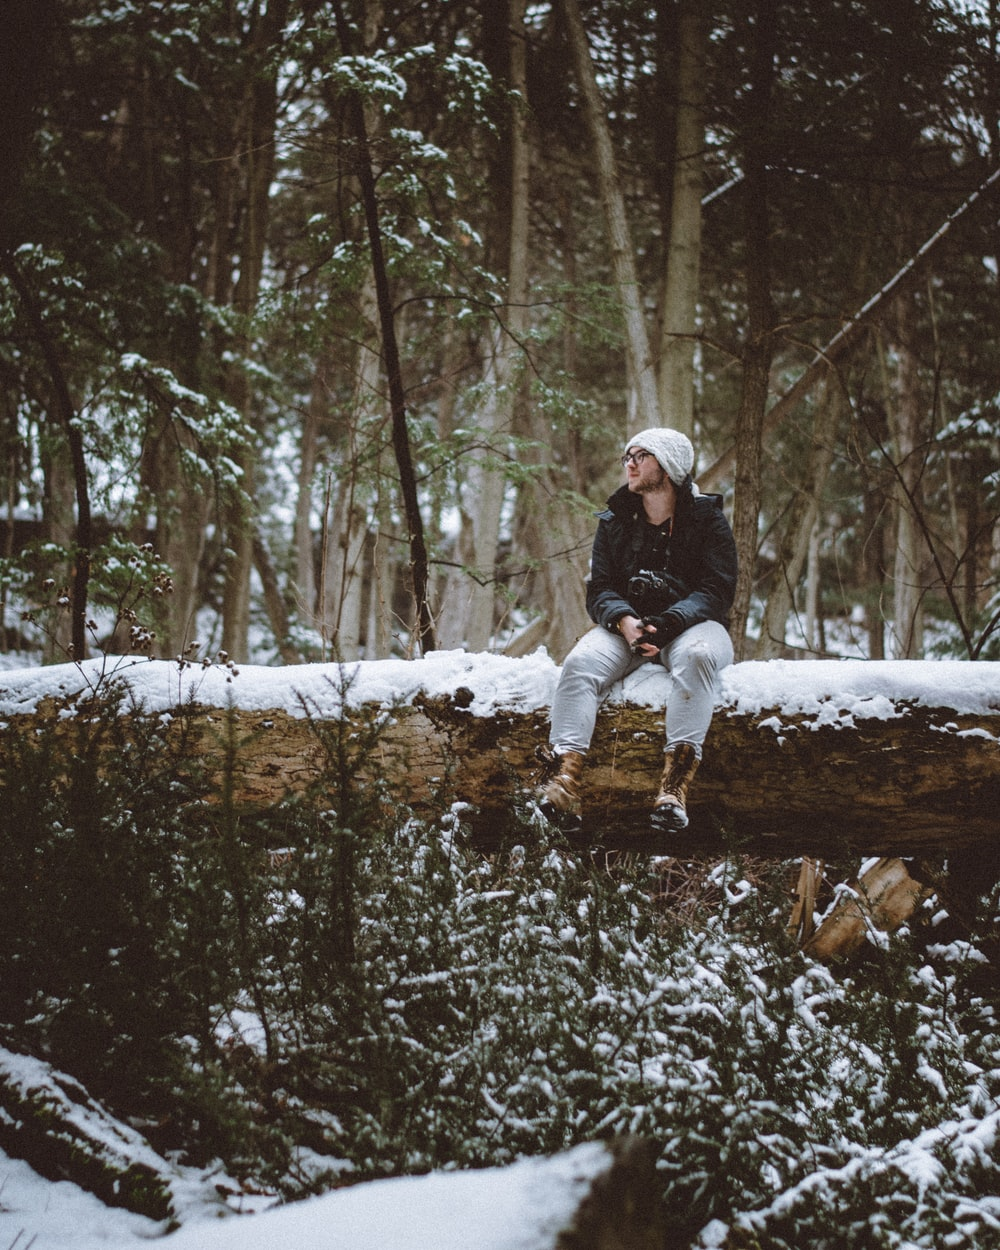 man wearing white knit cap and black jacket sitting on snow covered tree log